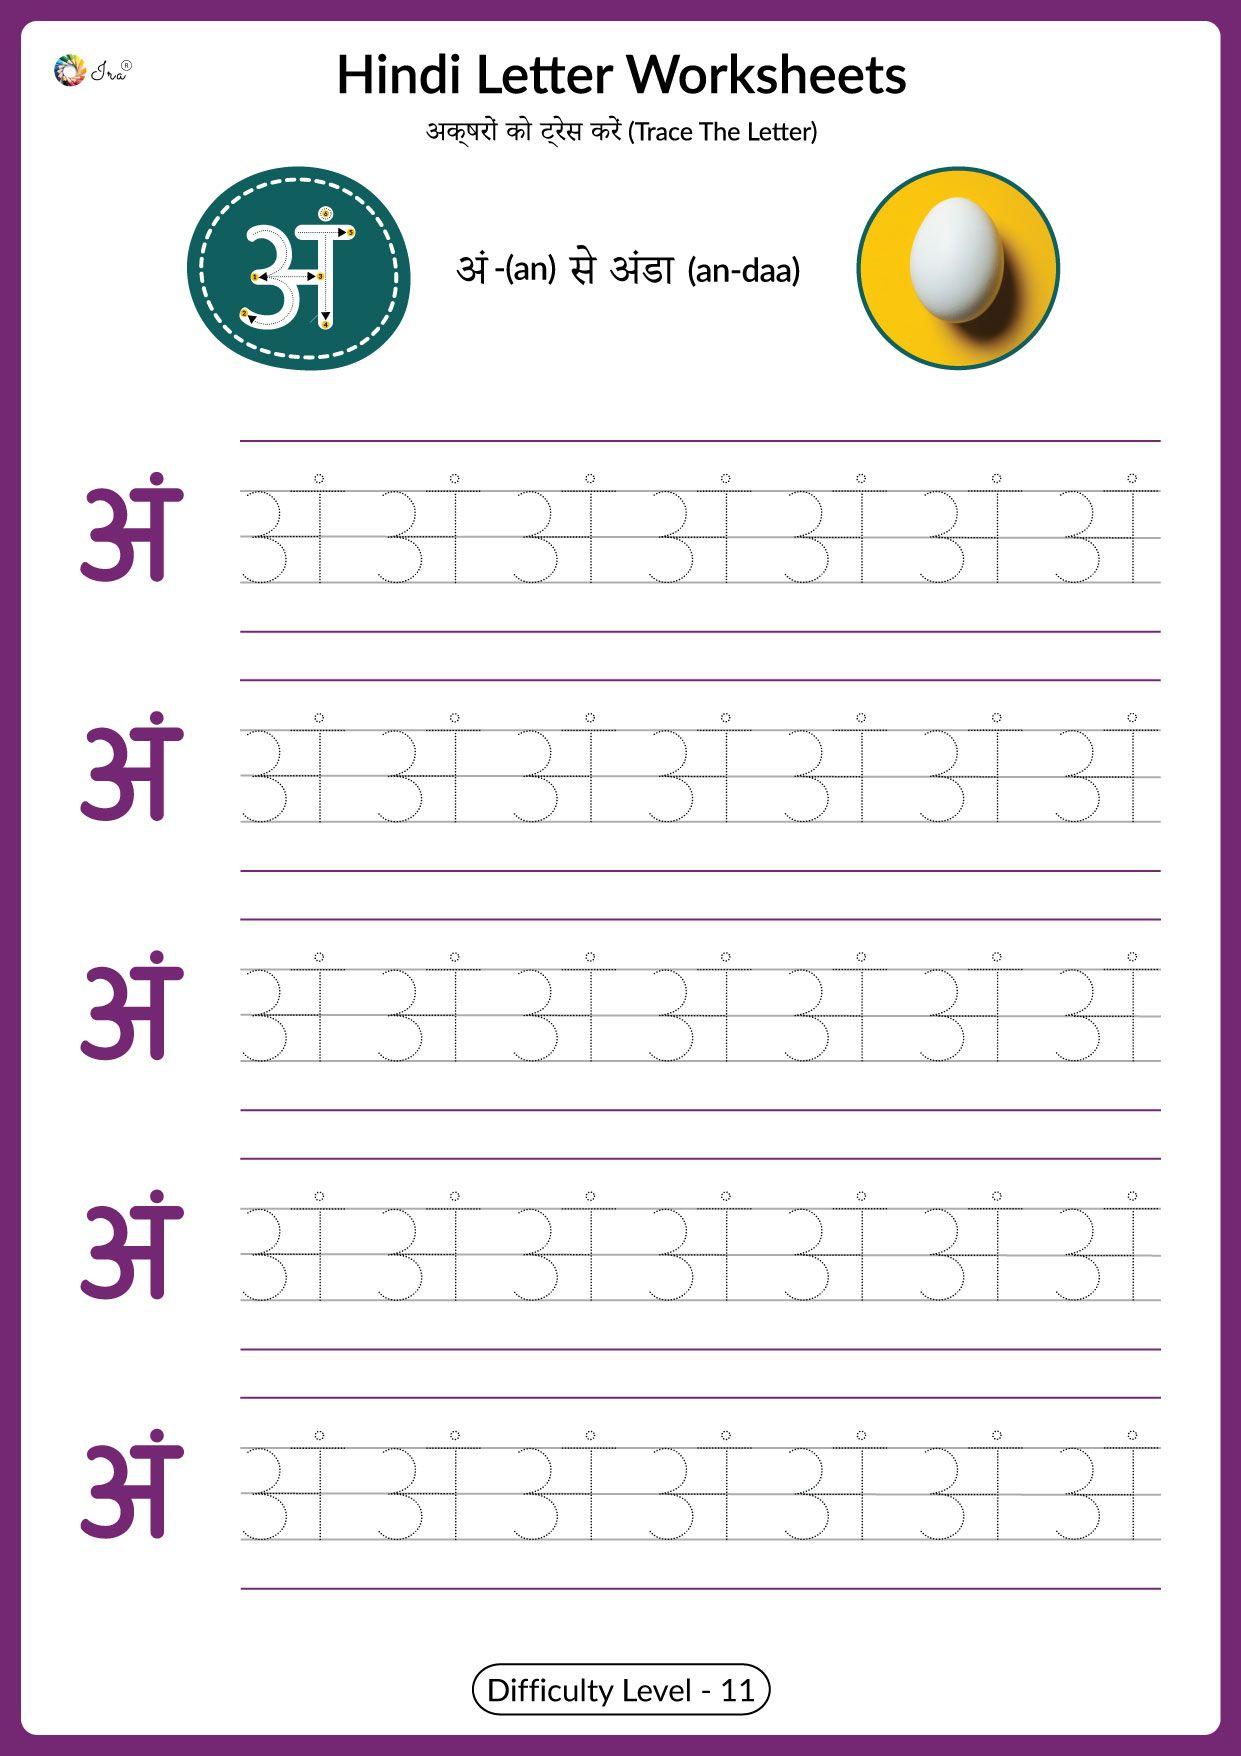 Hindi Worksheet For Nursery Students Printable Worksheets And Activities For Teachers Parents Tutors And Homeschool Families